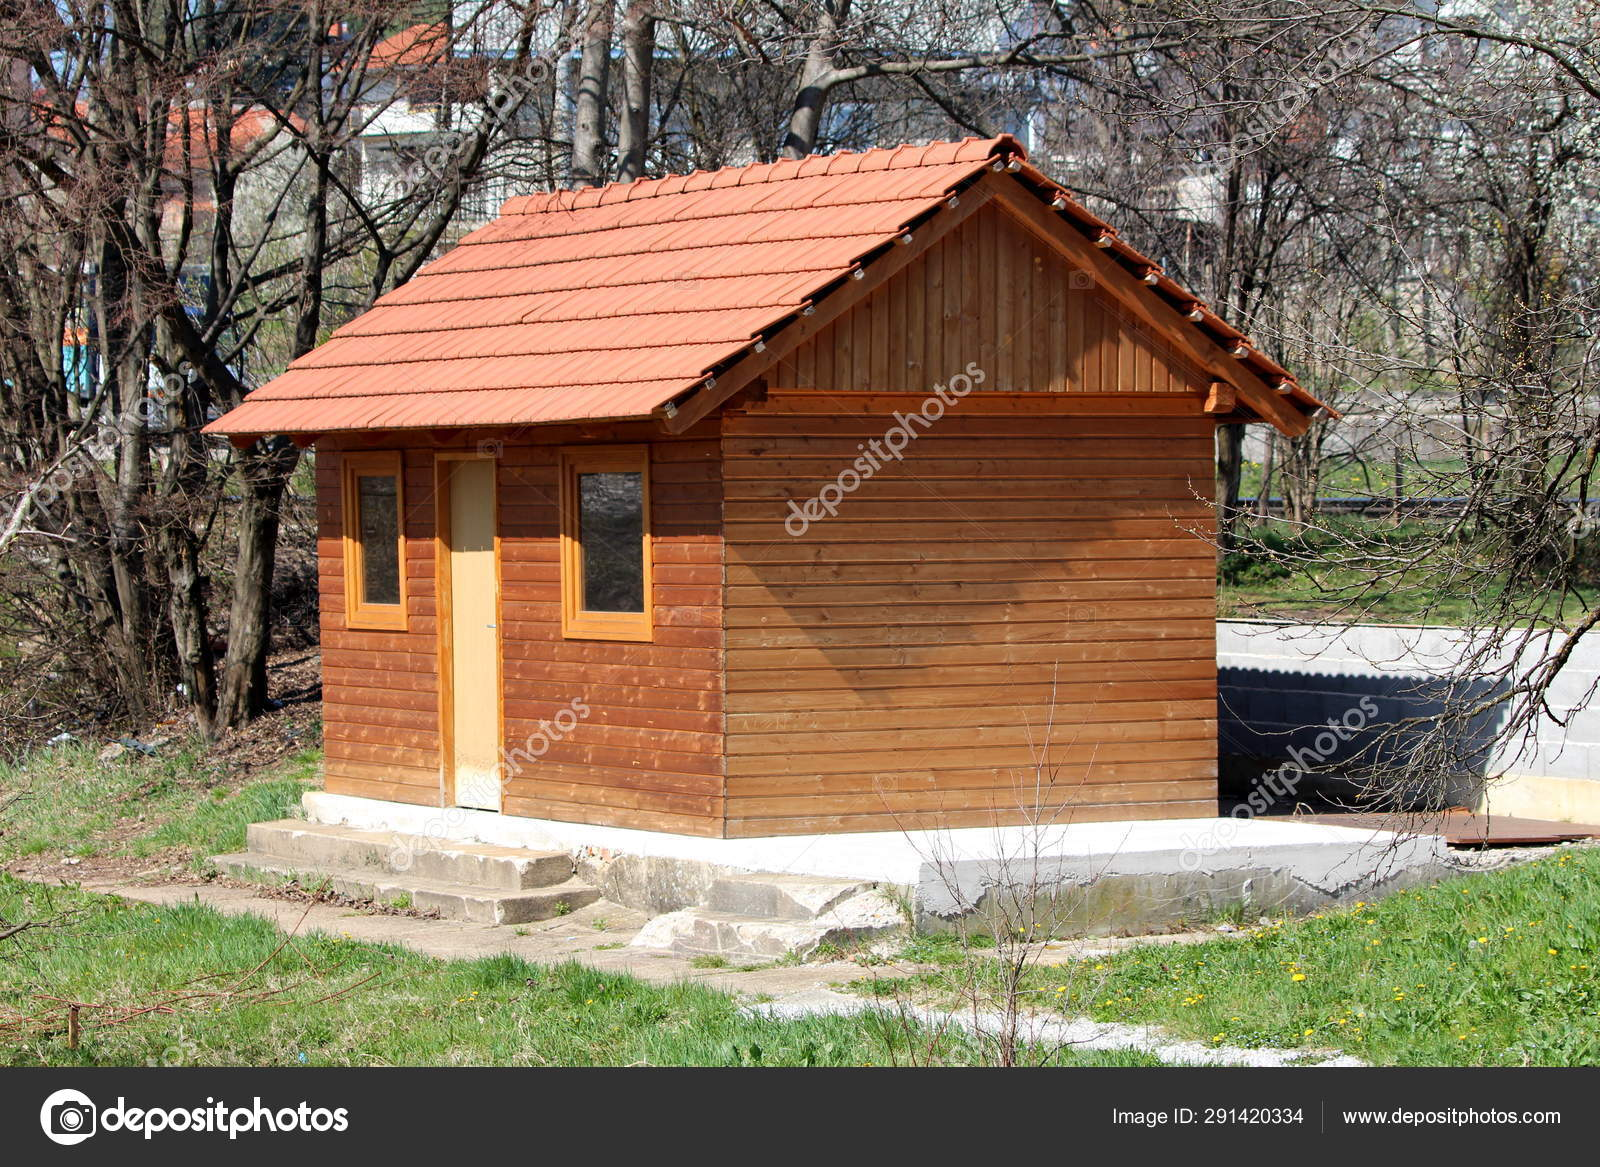 New Small Wooden House Single Entrance Door Two Windows Mounted Stock Photo C Hecos 291420334